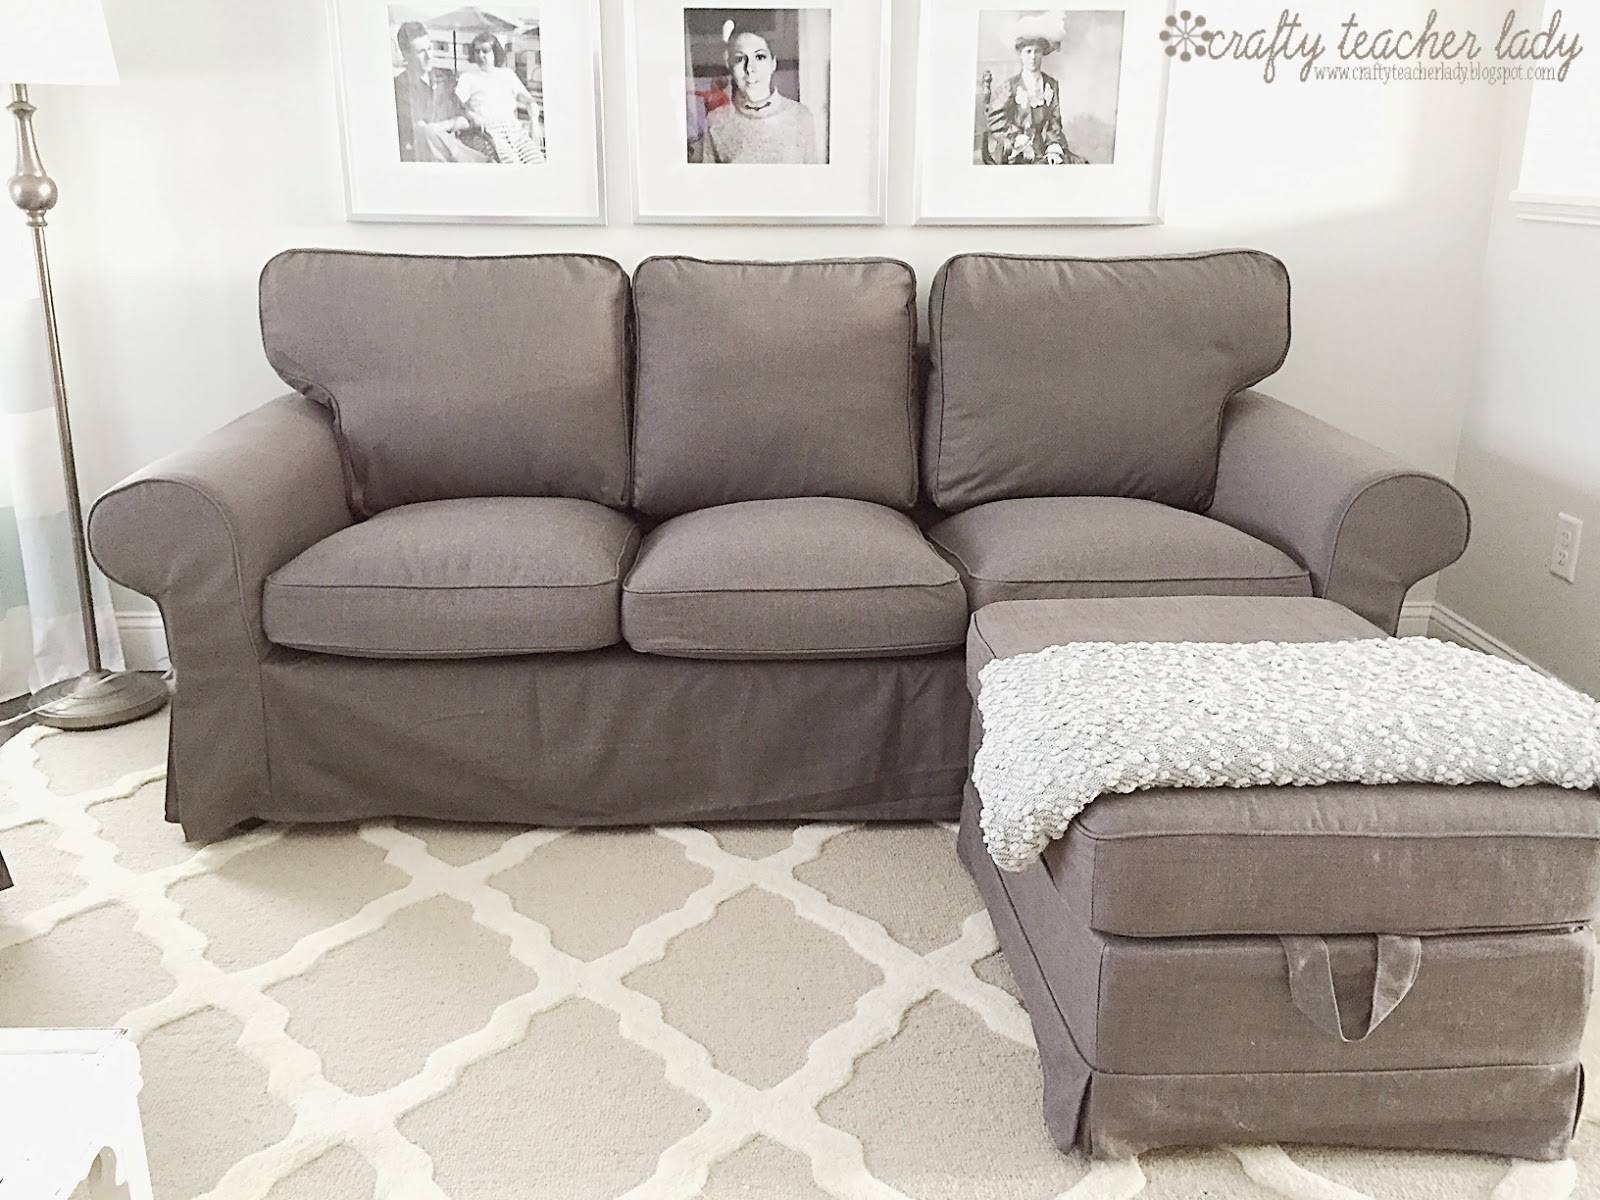 Furniture: Slipcovered Loveseat | Slipcovers For Loveseat intended for Loveseat Slipcovers T-Cushion (Image 9 of 15)